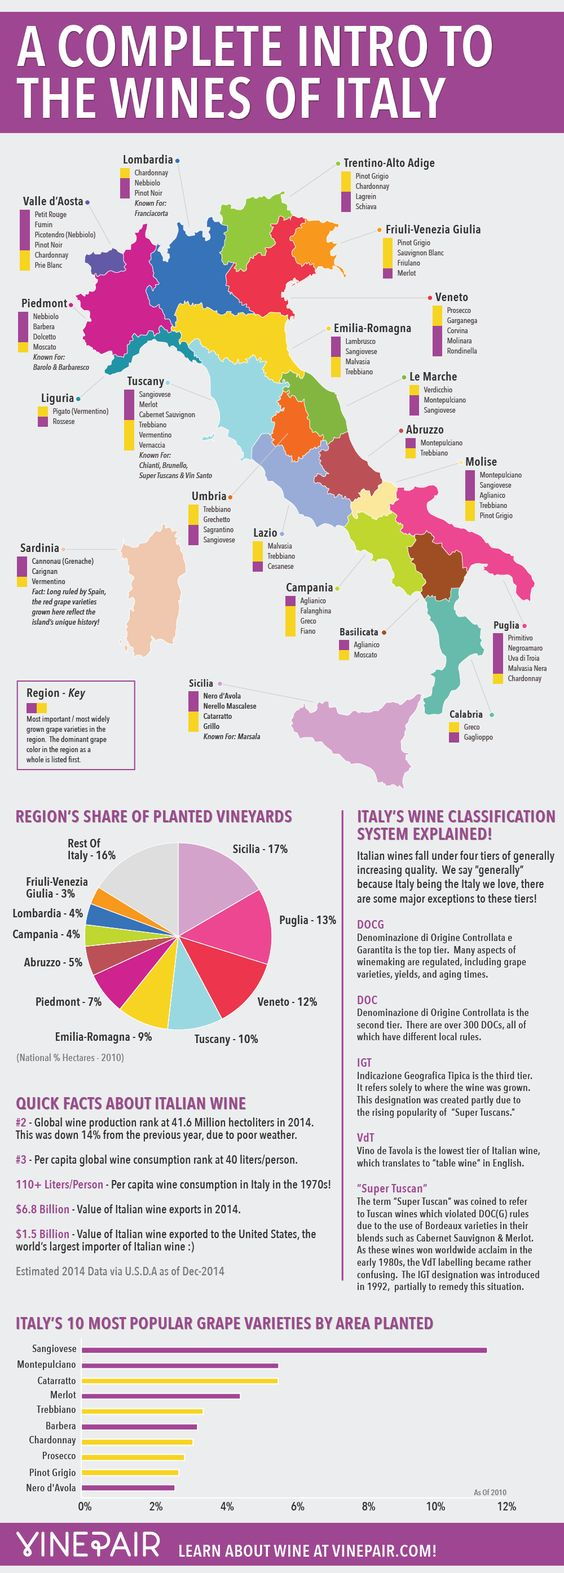 A Complete Introduction To The Wines Of Italy: MAP & INFOGRAPHIC   VinePair